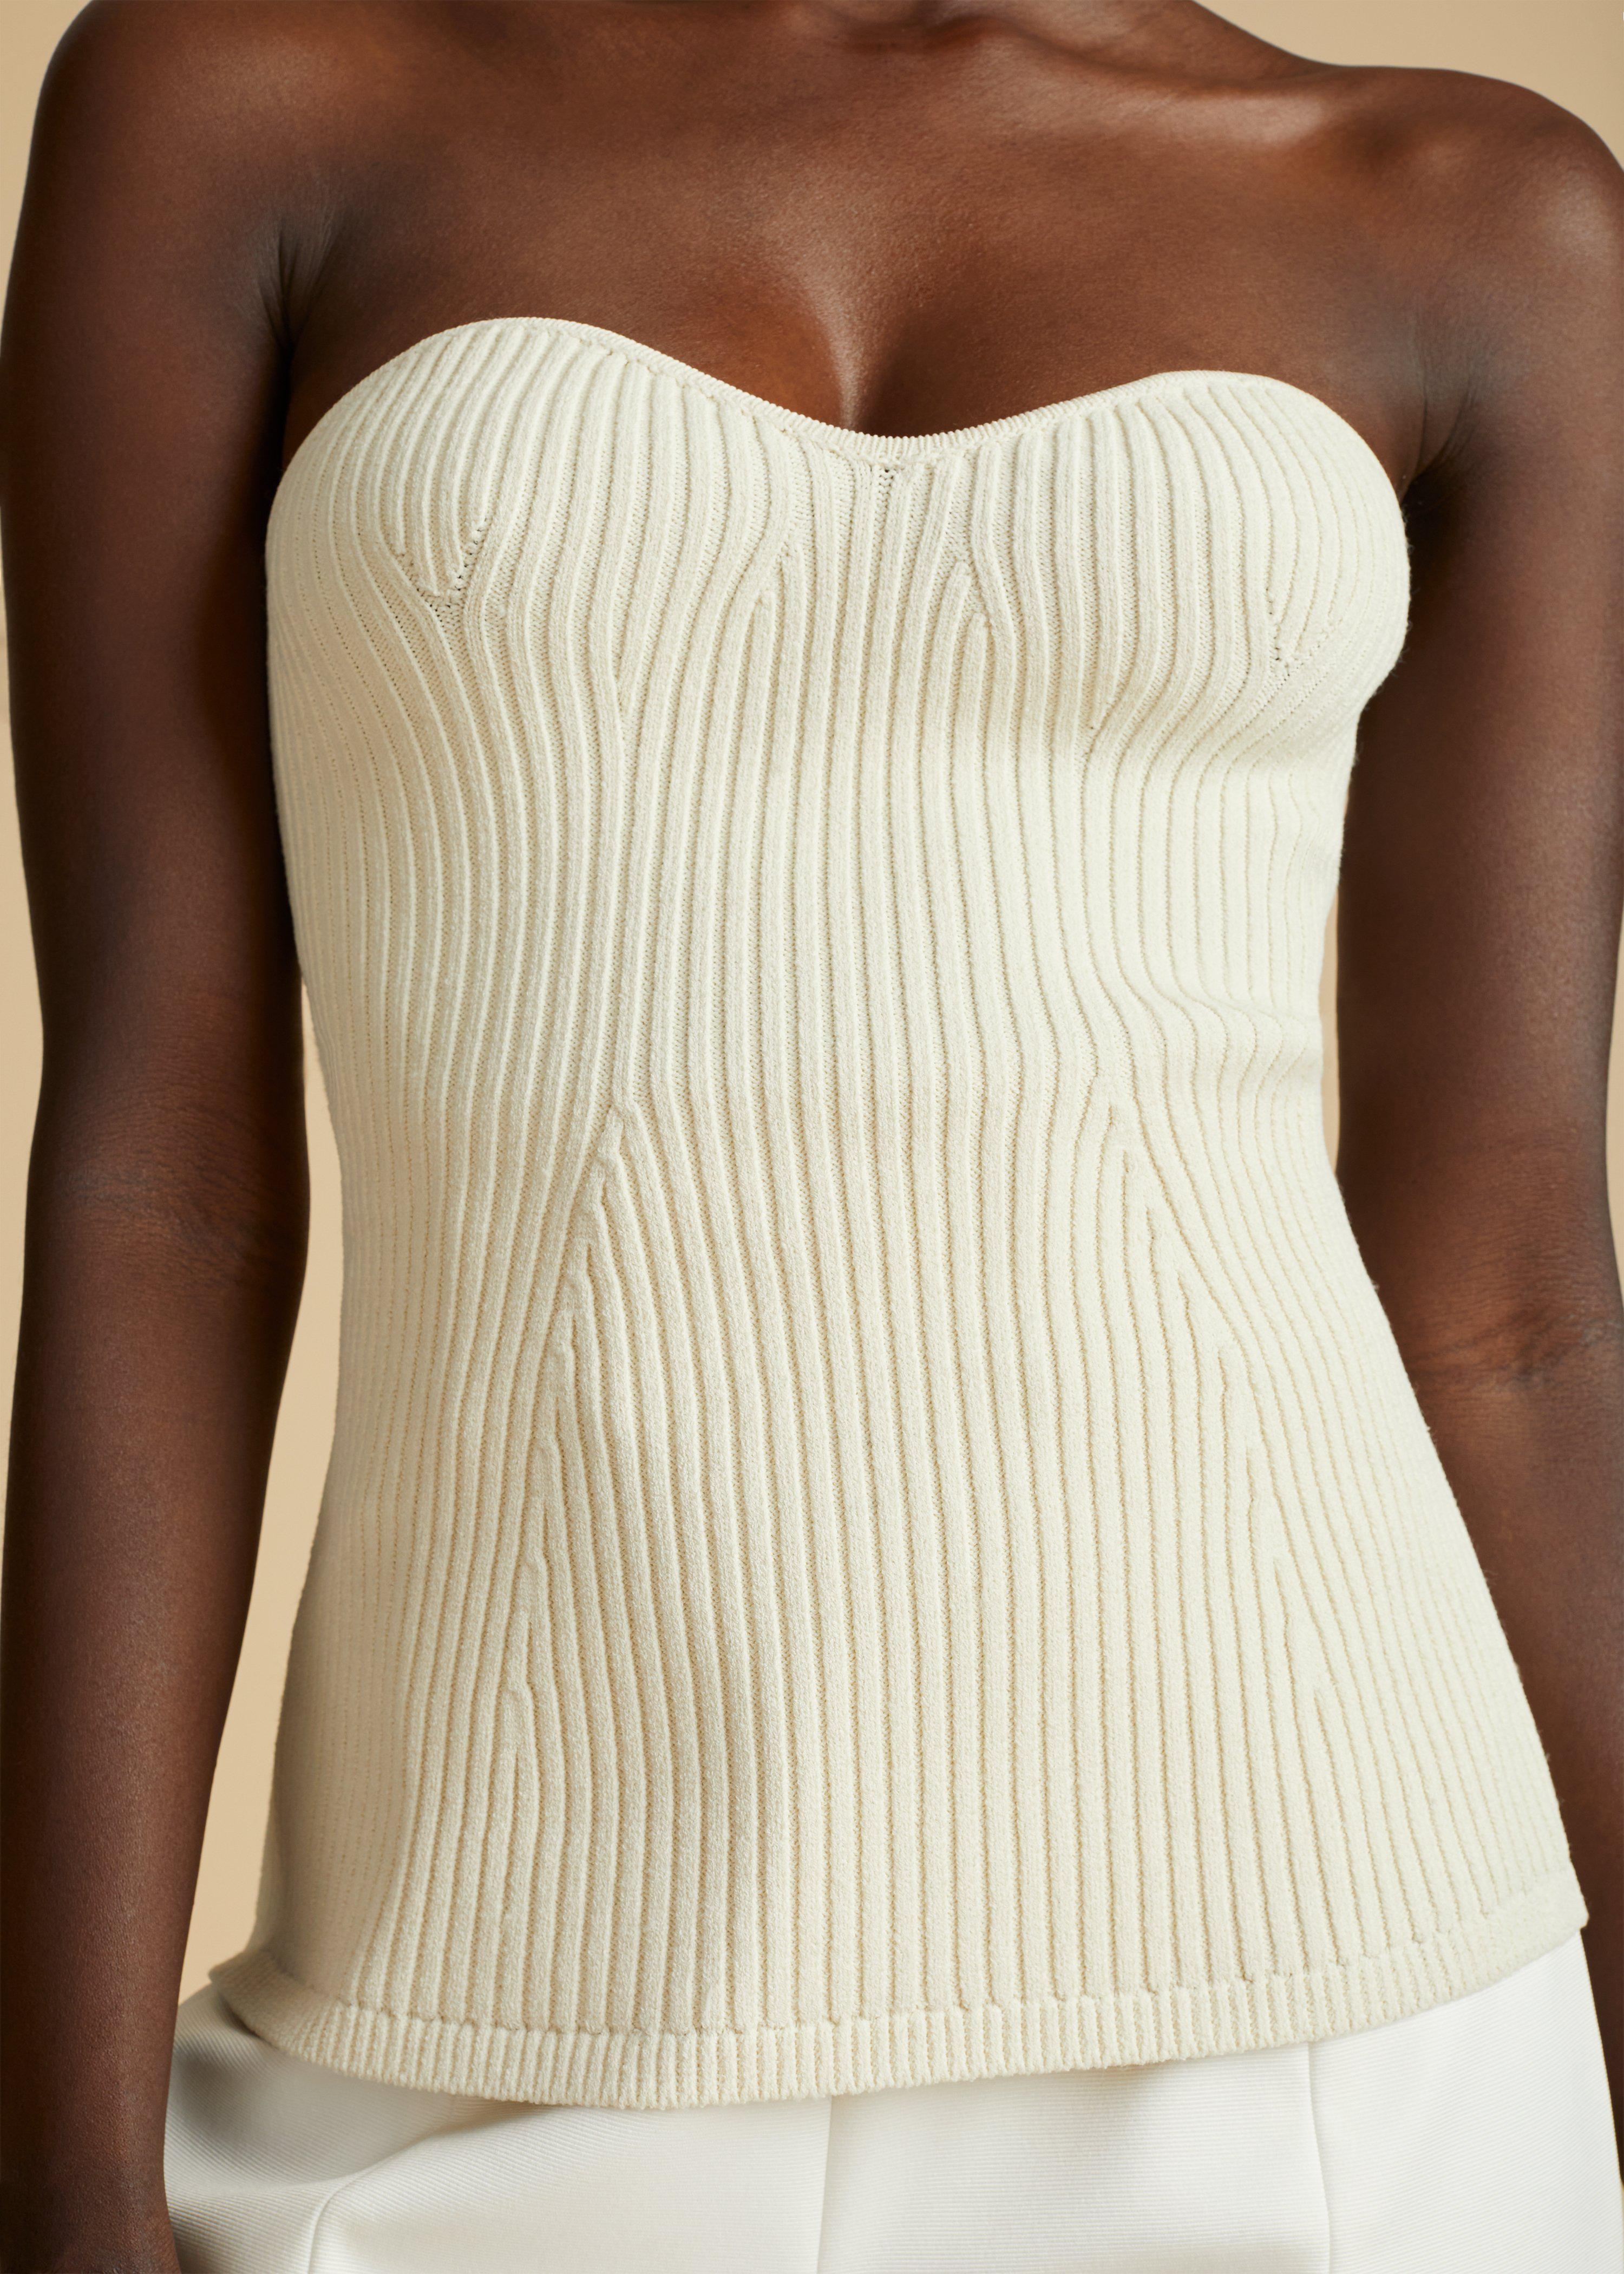 The Lucie Top in Cream 3